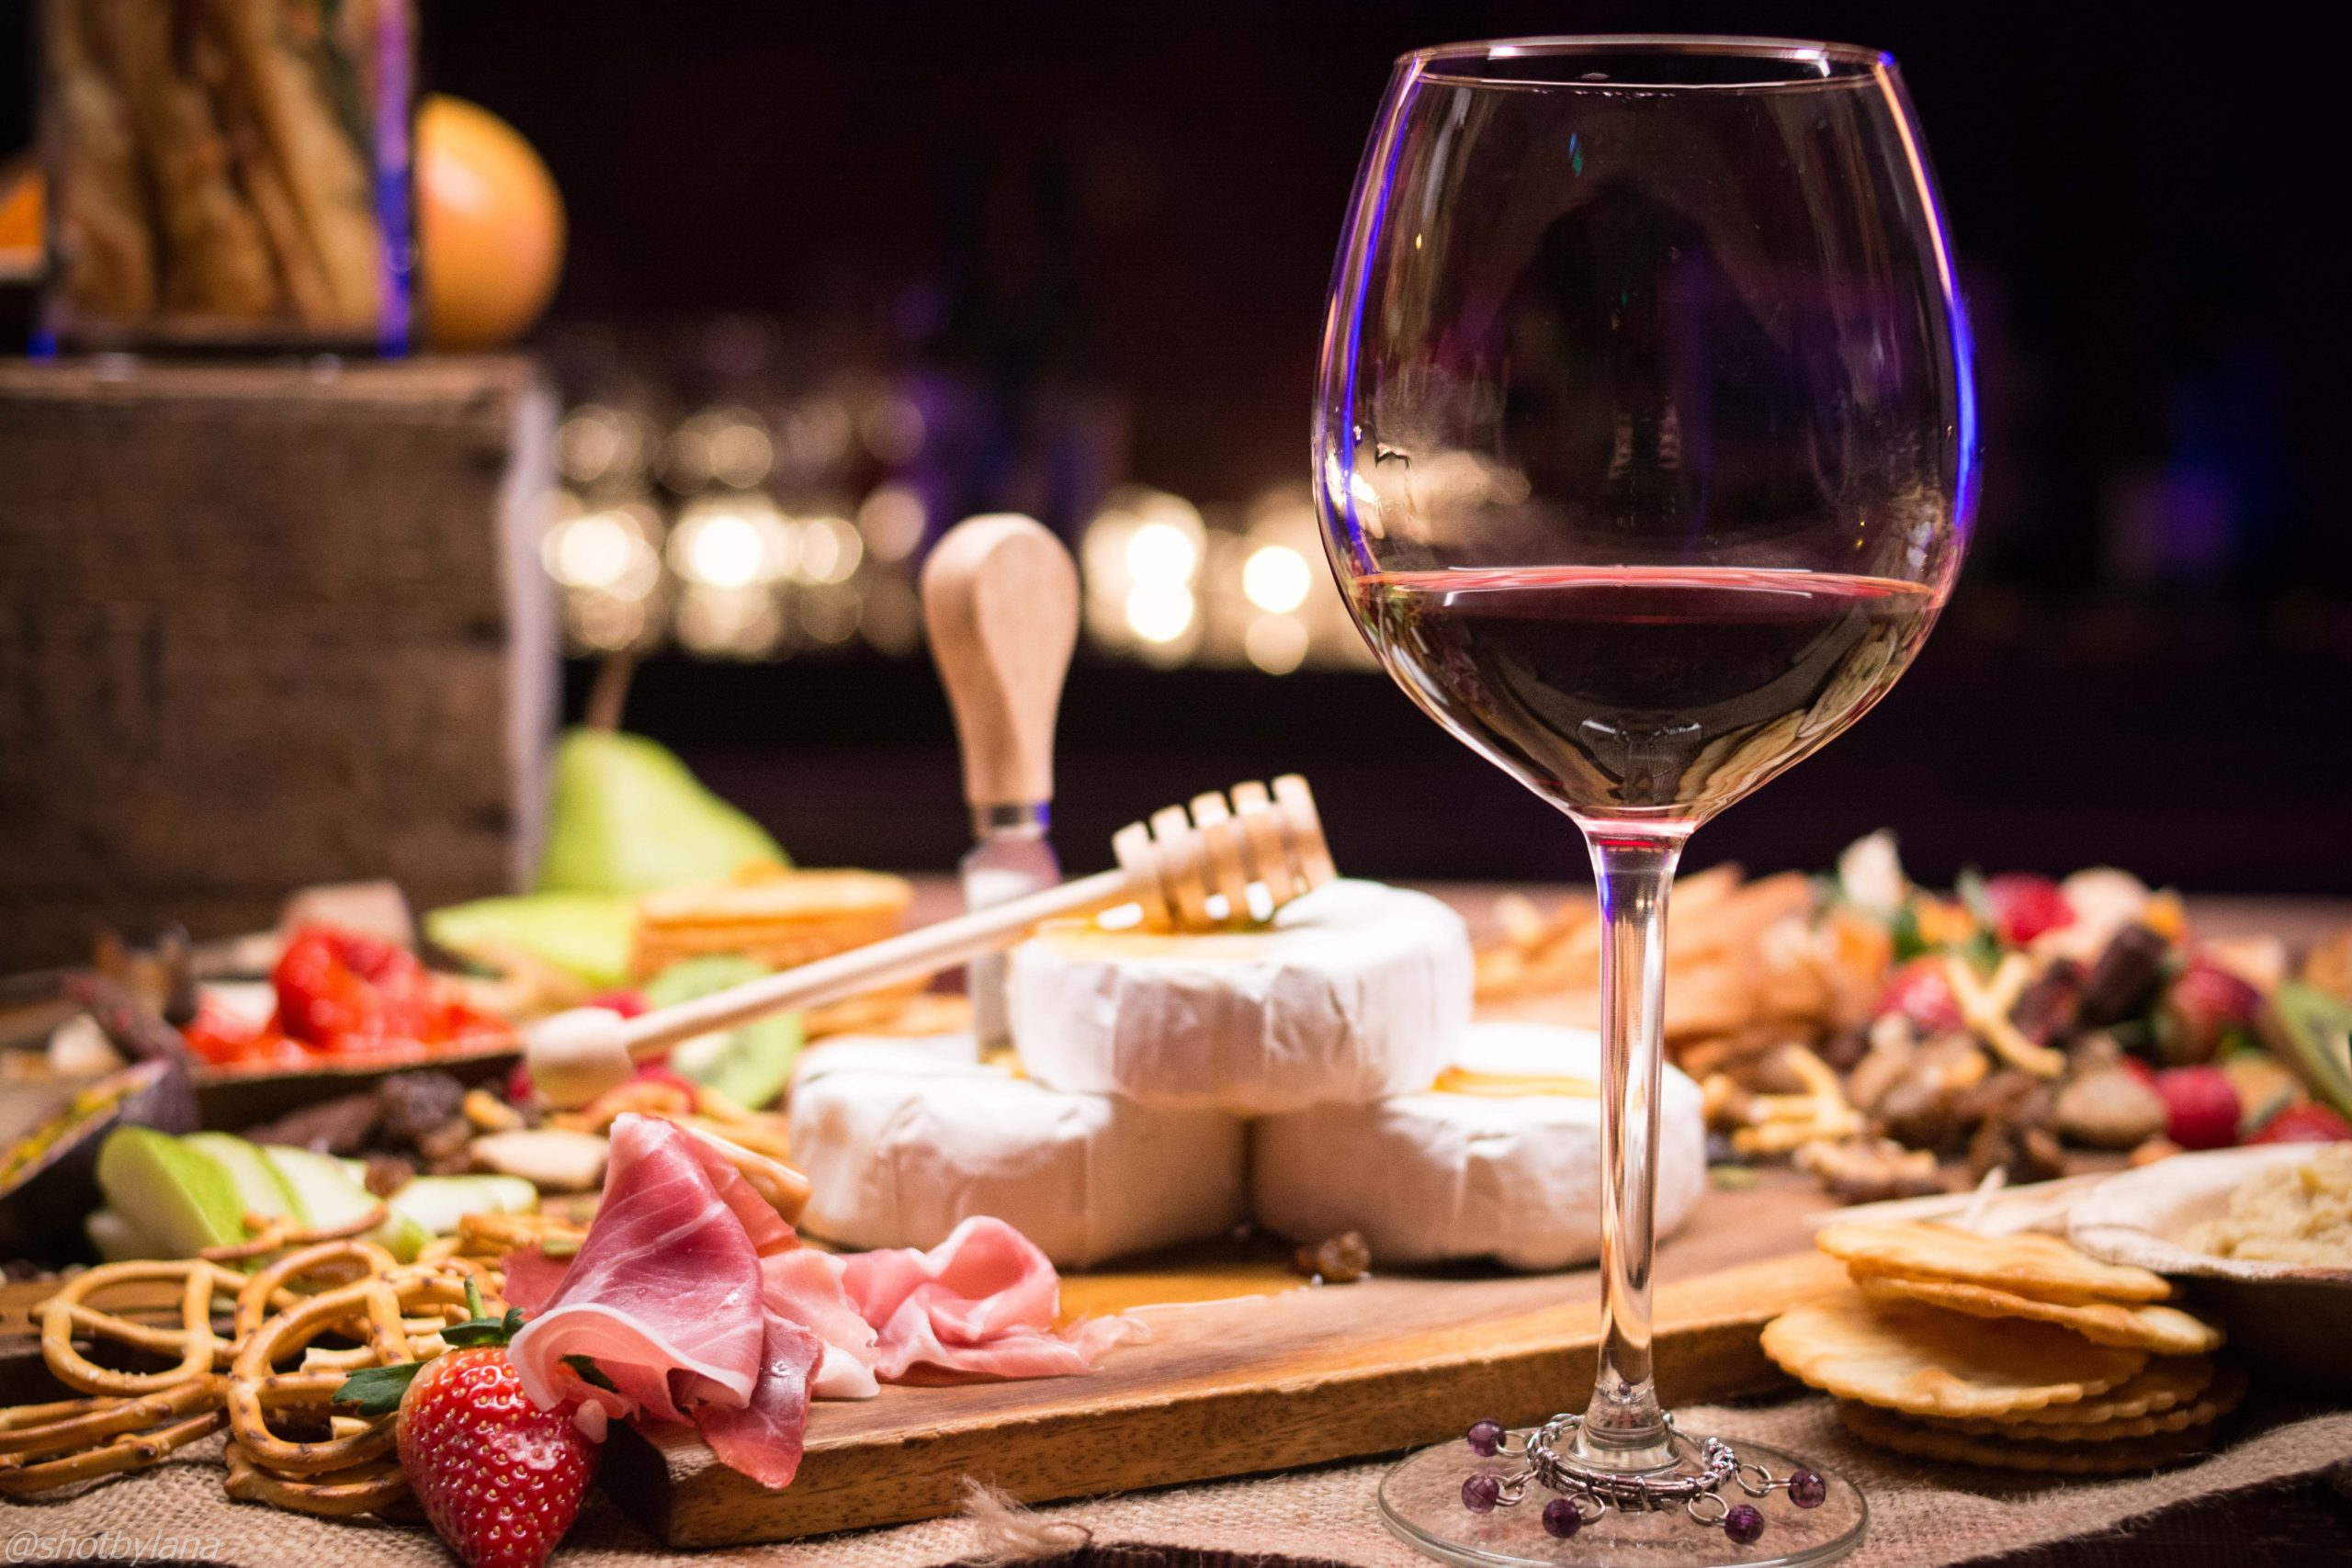 wine with cheese and meat board